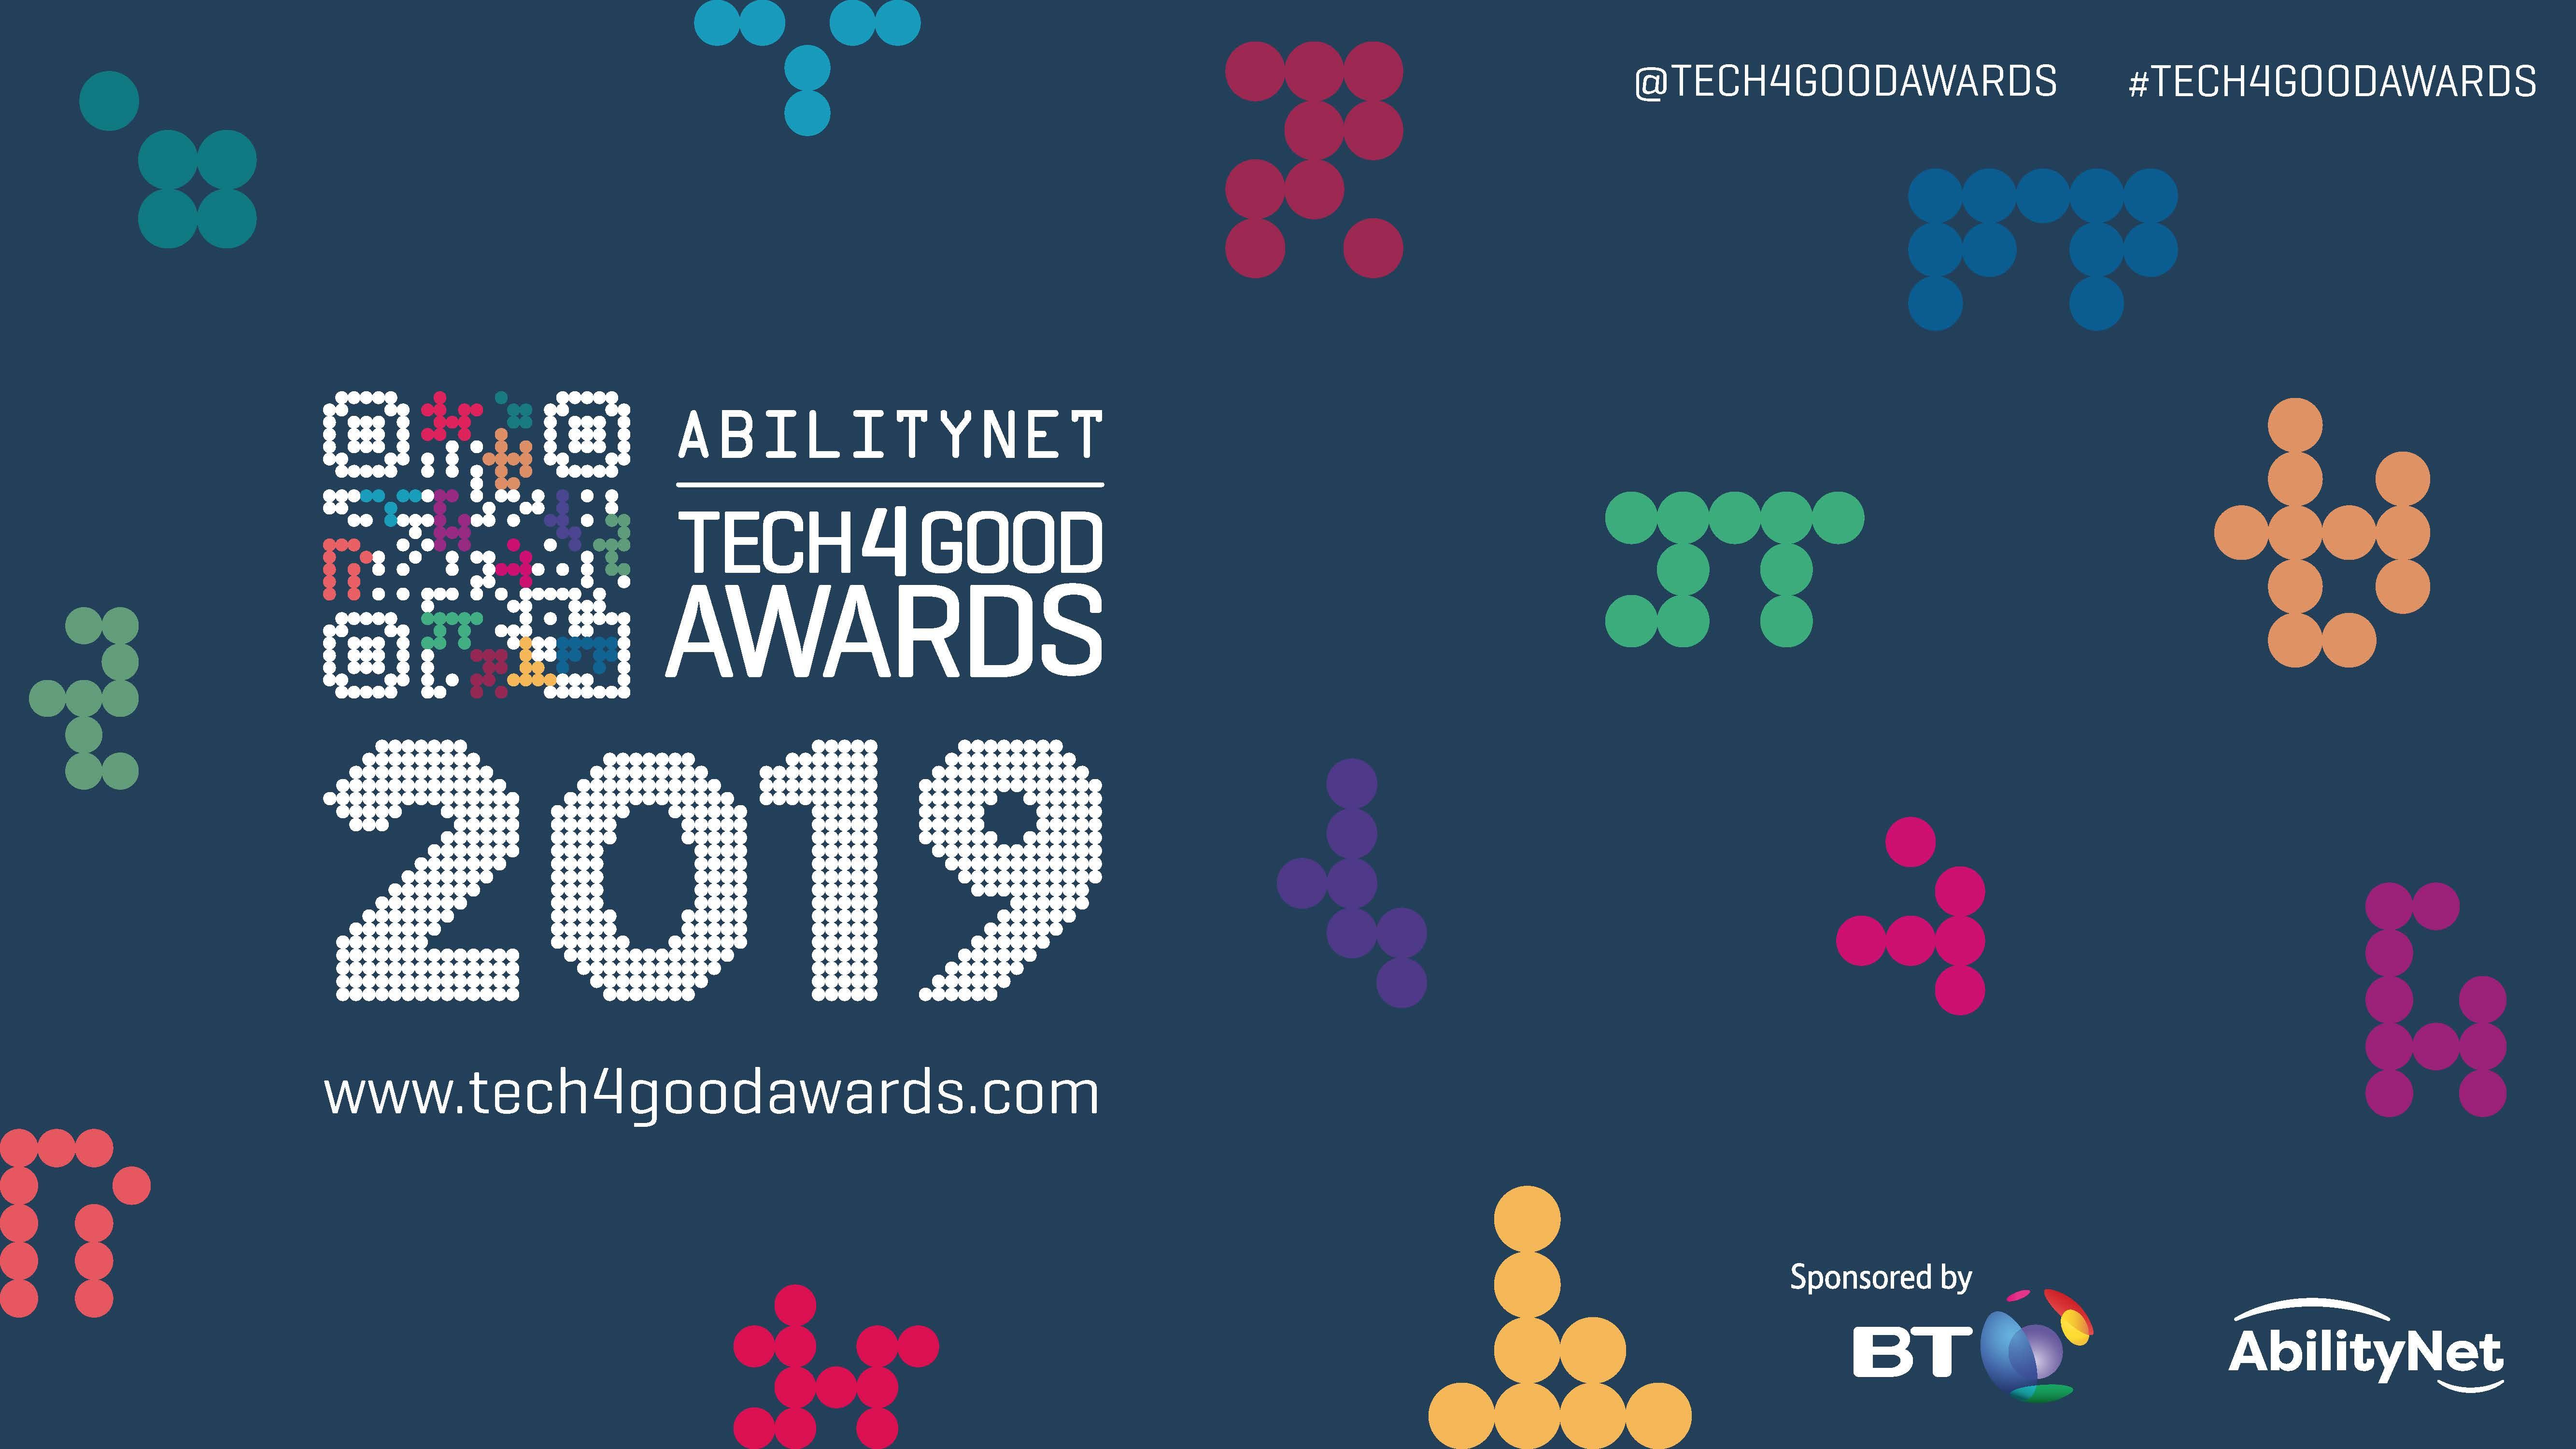 AbilityNet Tech4Good Awards 2019 logo with AbilityNet and BT logos